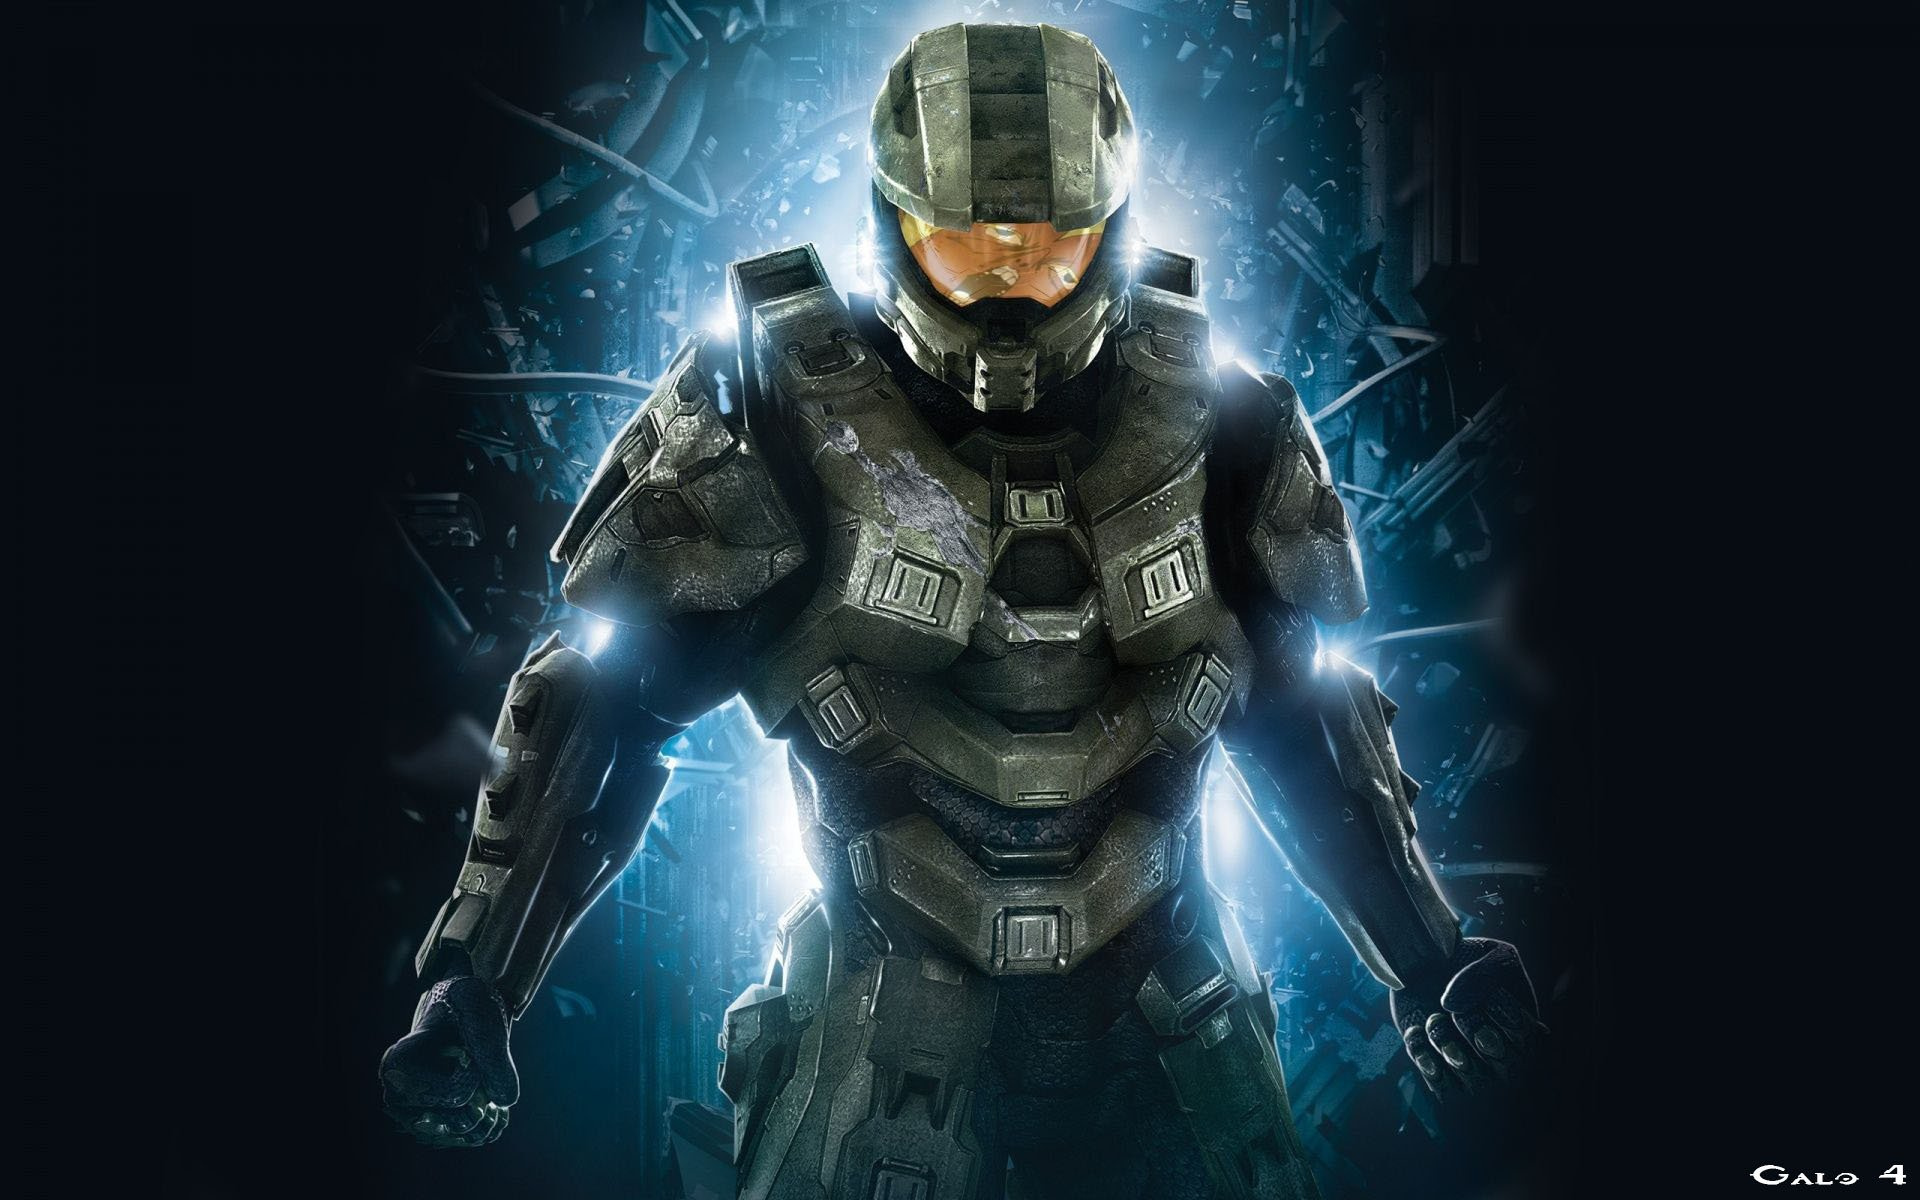 Halo 4 HD Wallpapers and Background Images   stmednet 1920x1200